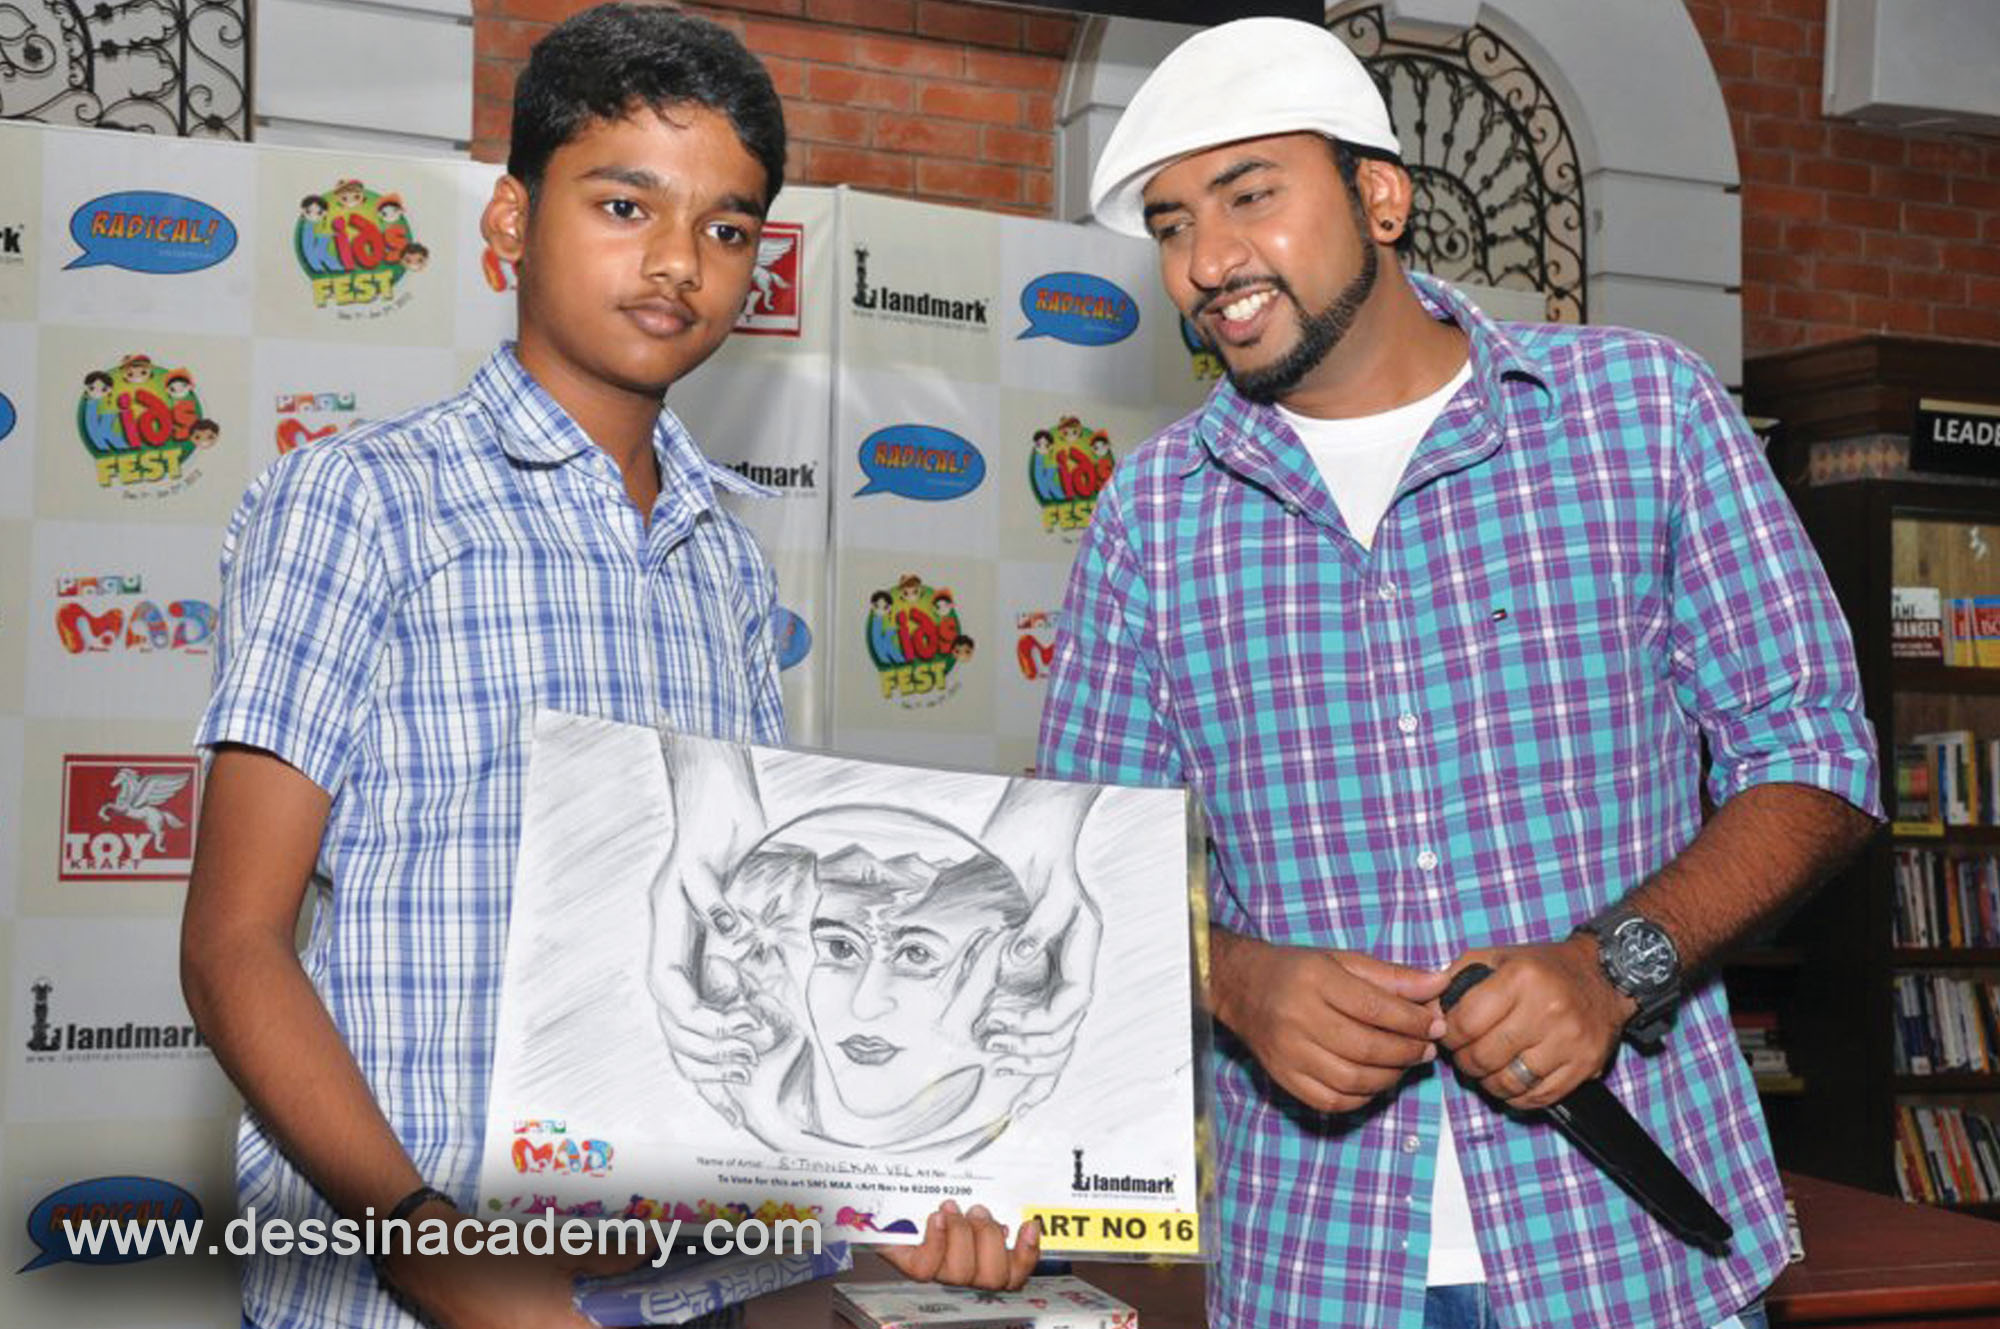 Dessin School of Arts Students Acheivement 5, Dessin School of Arts, part time fine arts courses classes in Anna Nagar East L Block